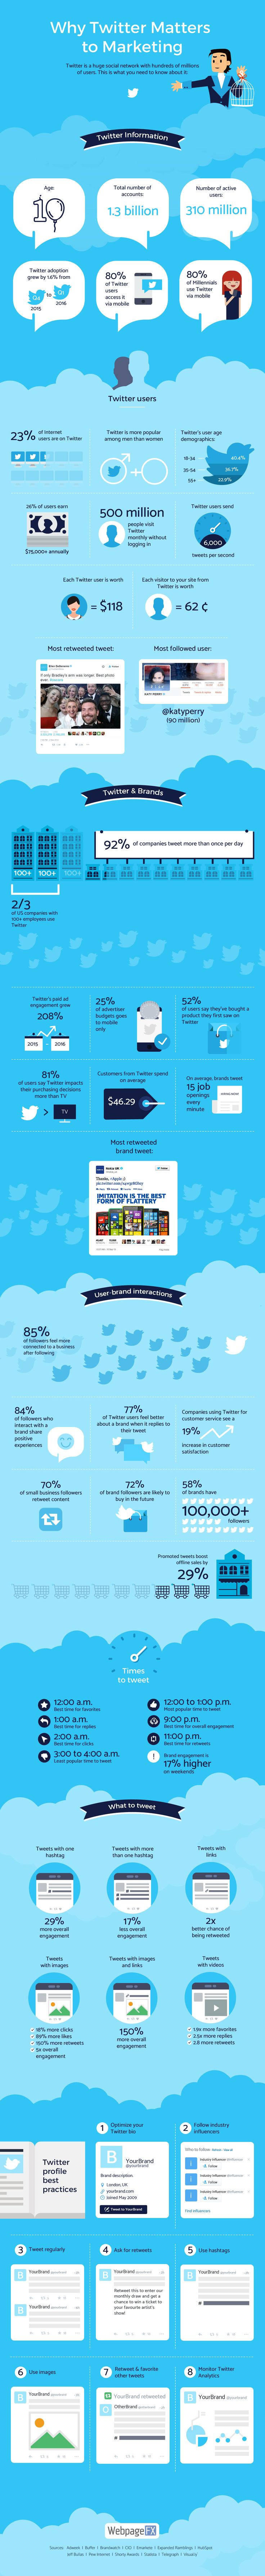 Why Twitter Matters To Marketing: http://blog.hubspot.com/marketing/twitter-stats-tips